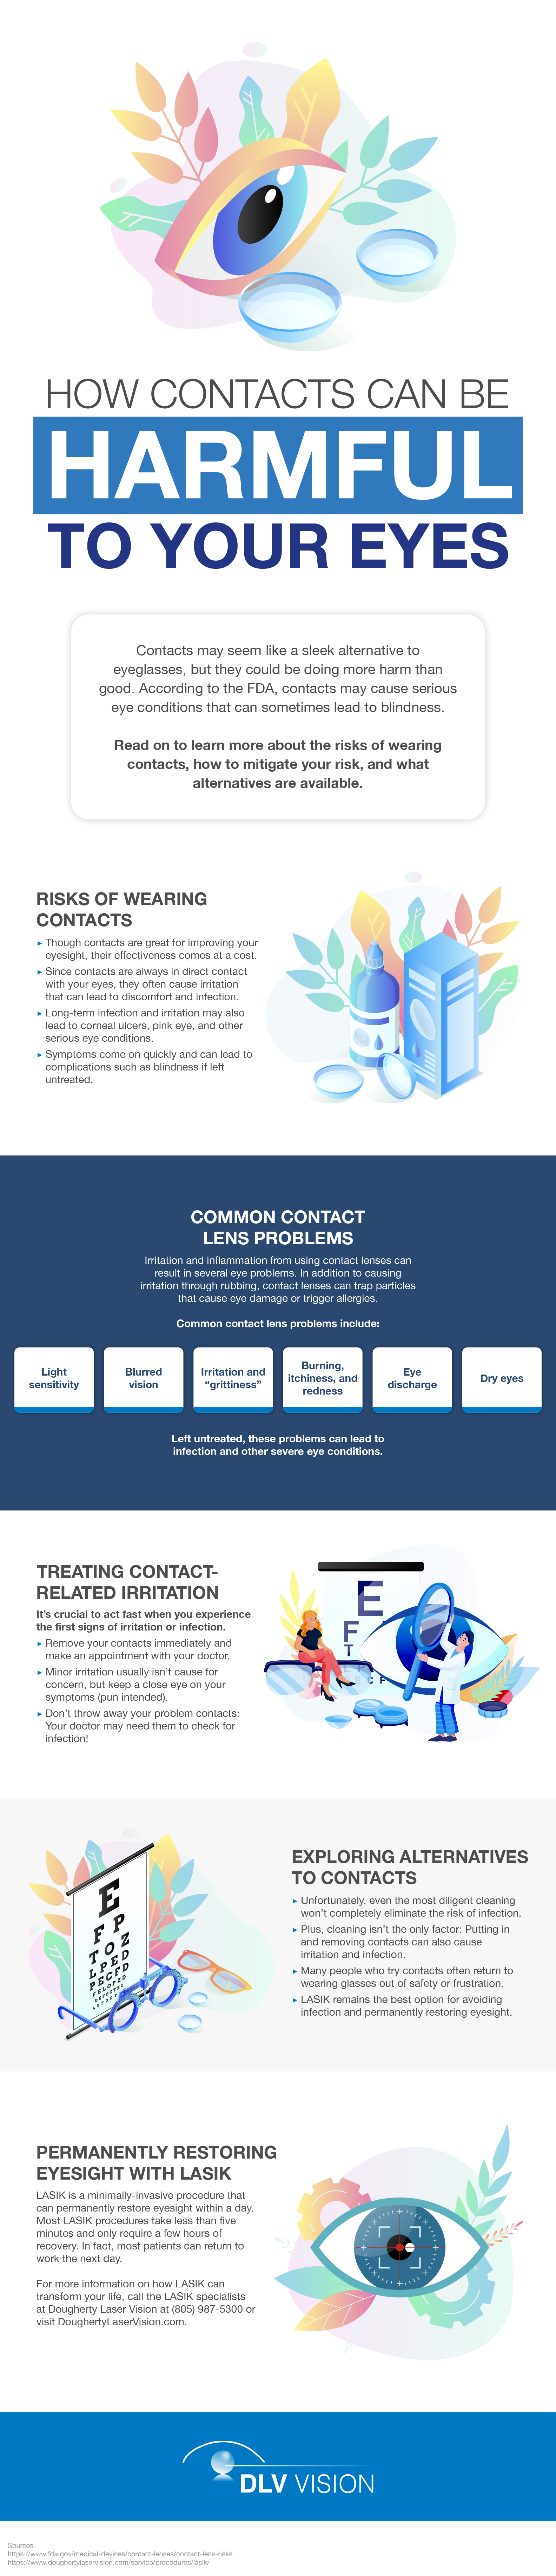 How Contacts Can Be Harmful to Your Eyes Infographic